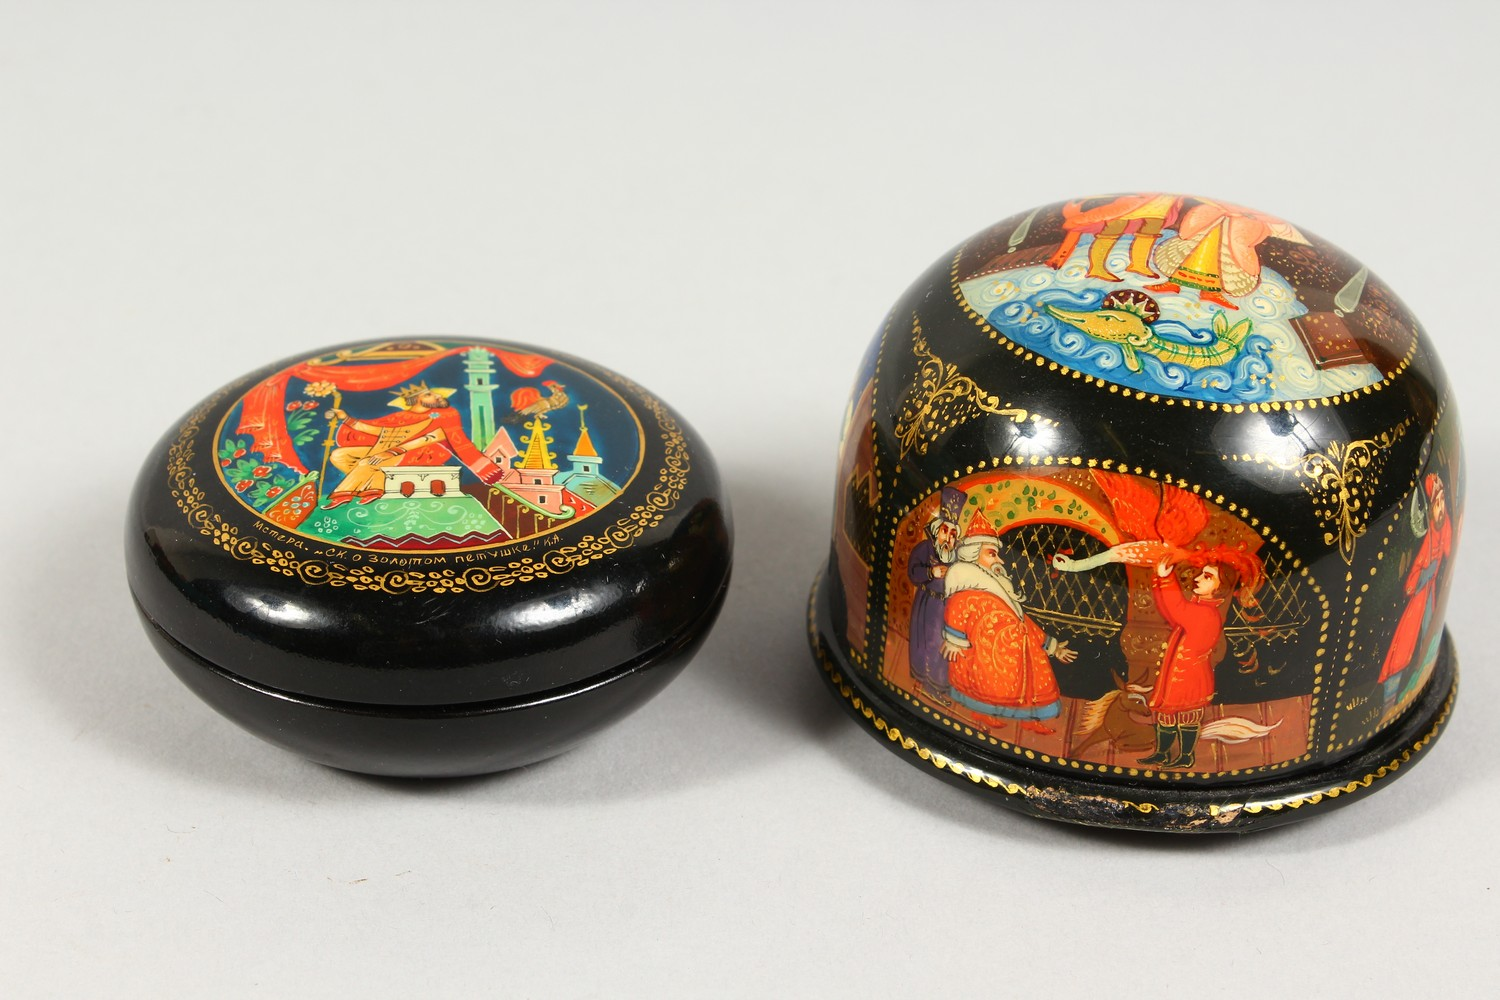 TWO SMALL RUSSIAN CIRCULAR BLACK PAPIER MACHE BOXES AND COVERS. 2.5ins diameter. - Image 2 of 12